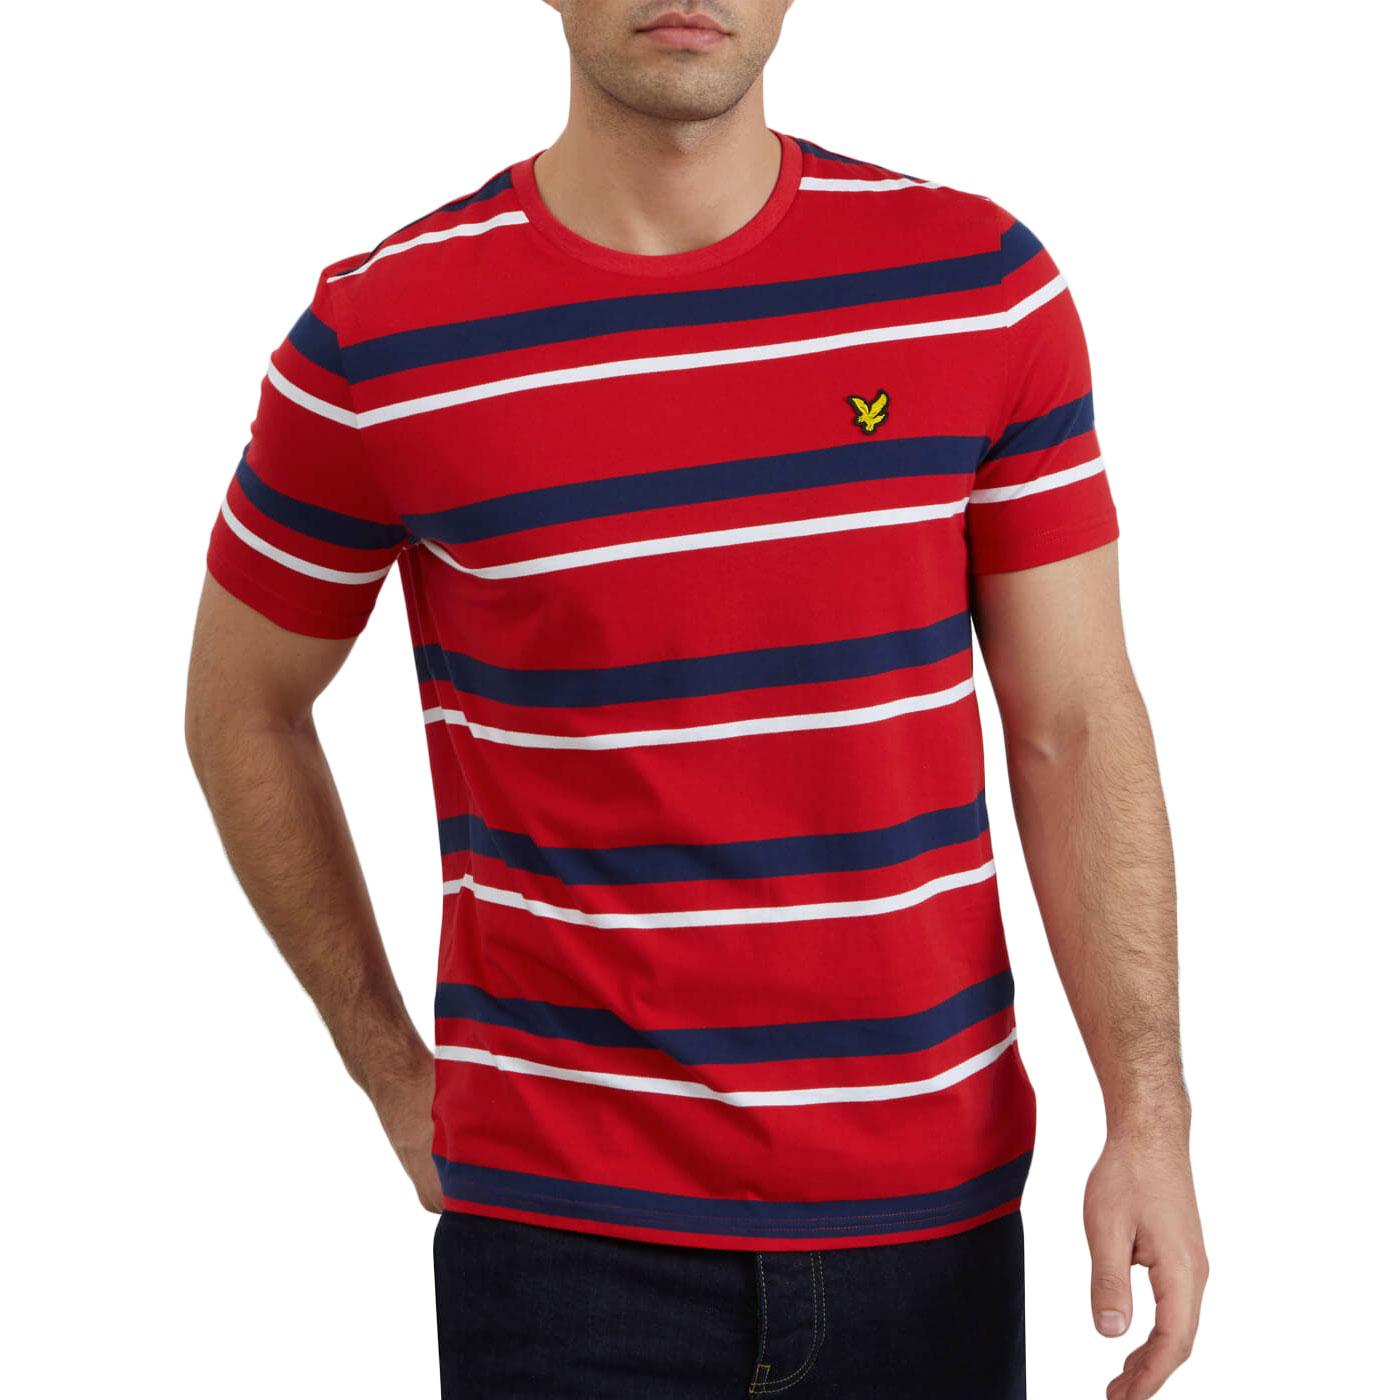 LYLE & SCOTT Retro Mod Multi Stripe T-shirt (Red)